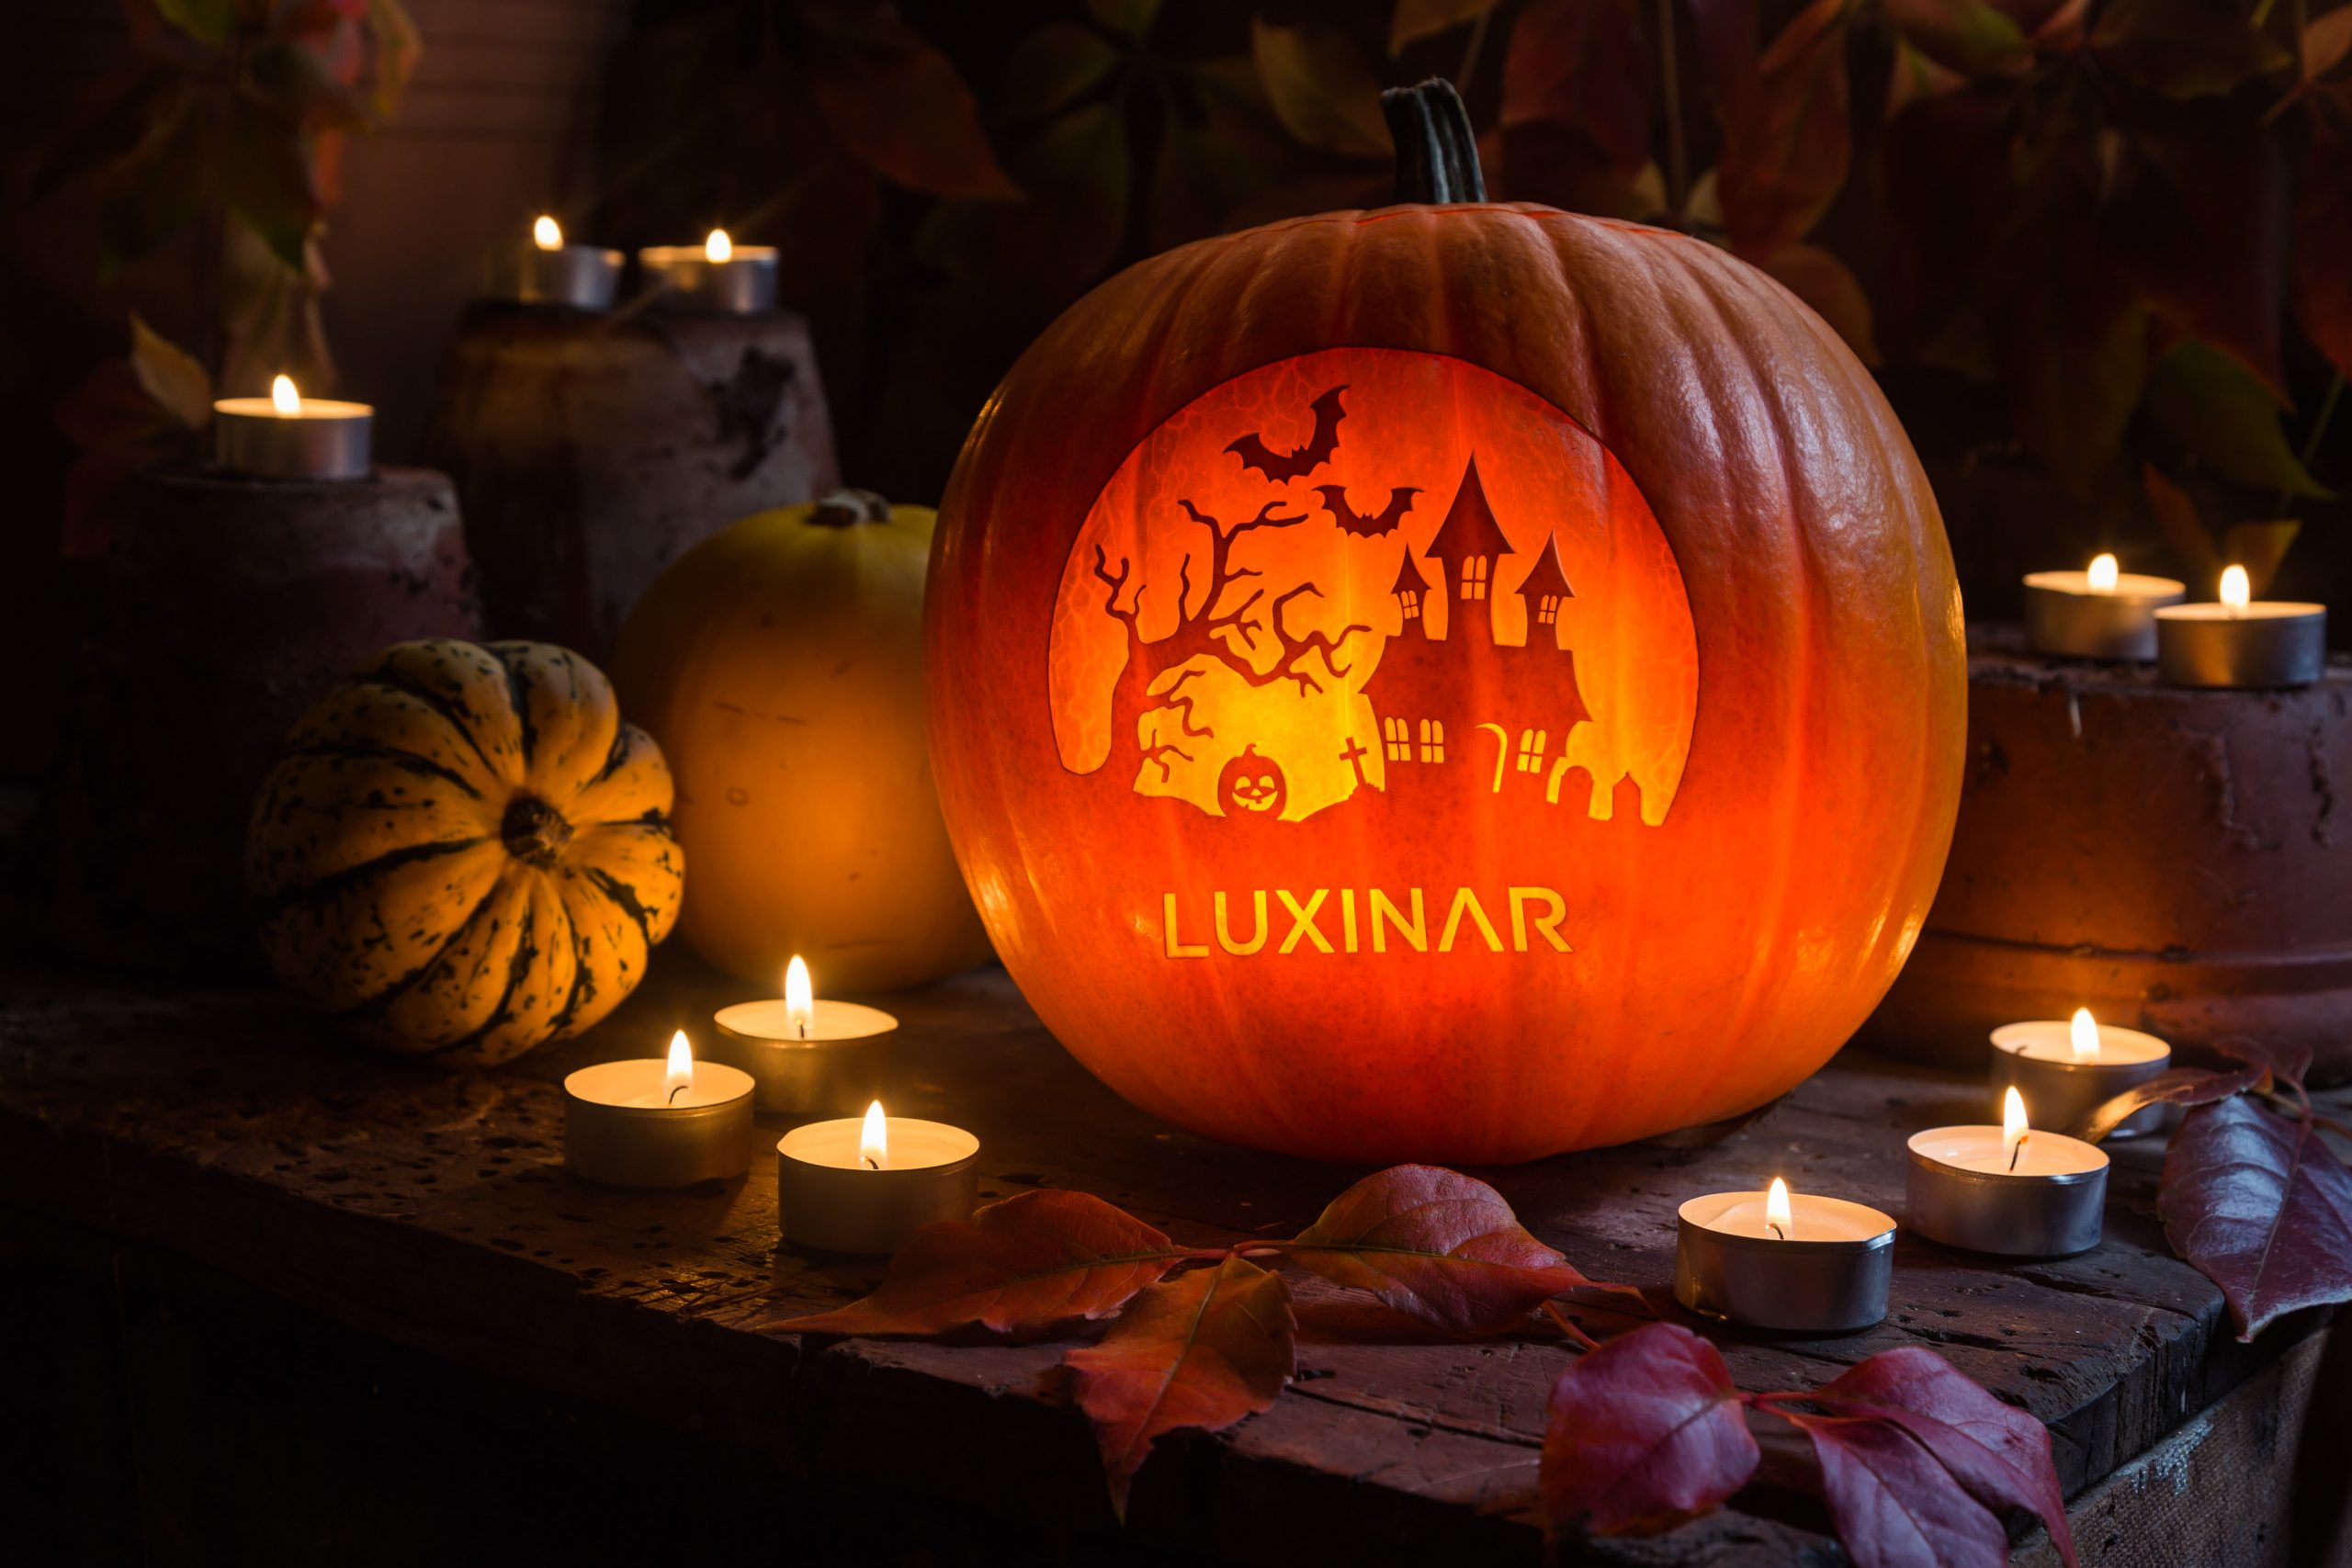 CO2 laser engraving on a pumpkin for Halloween